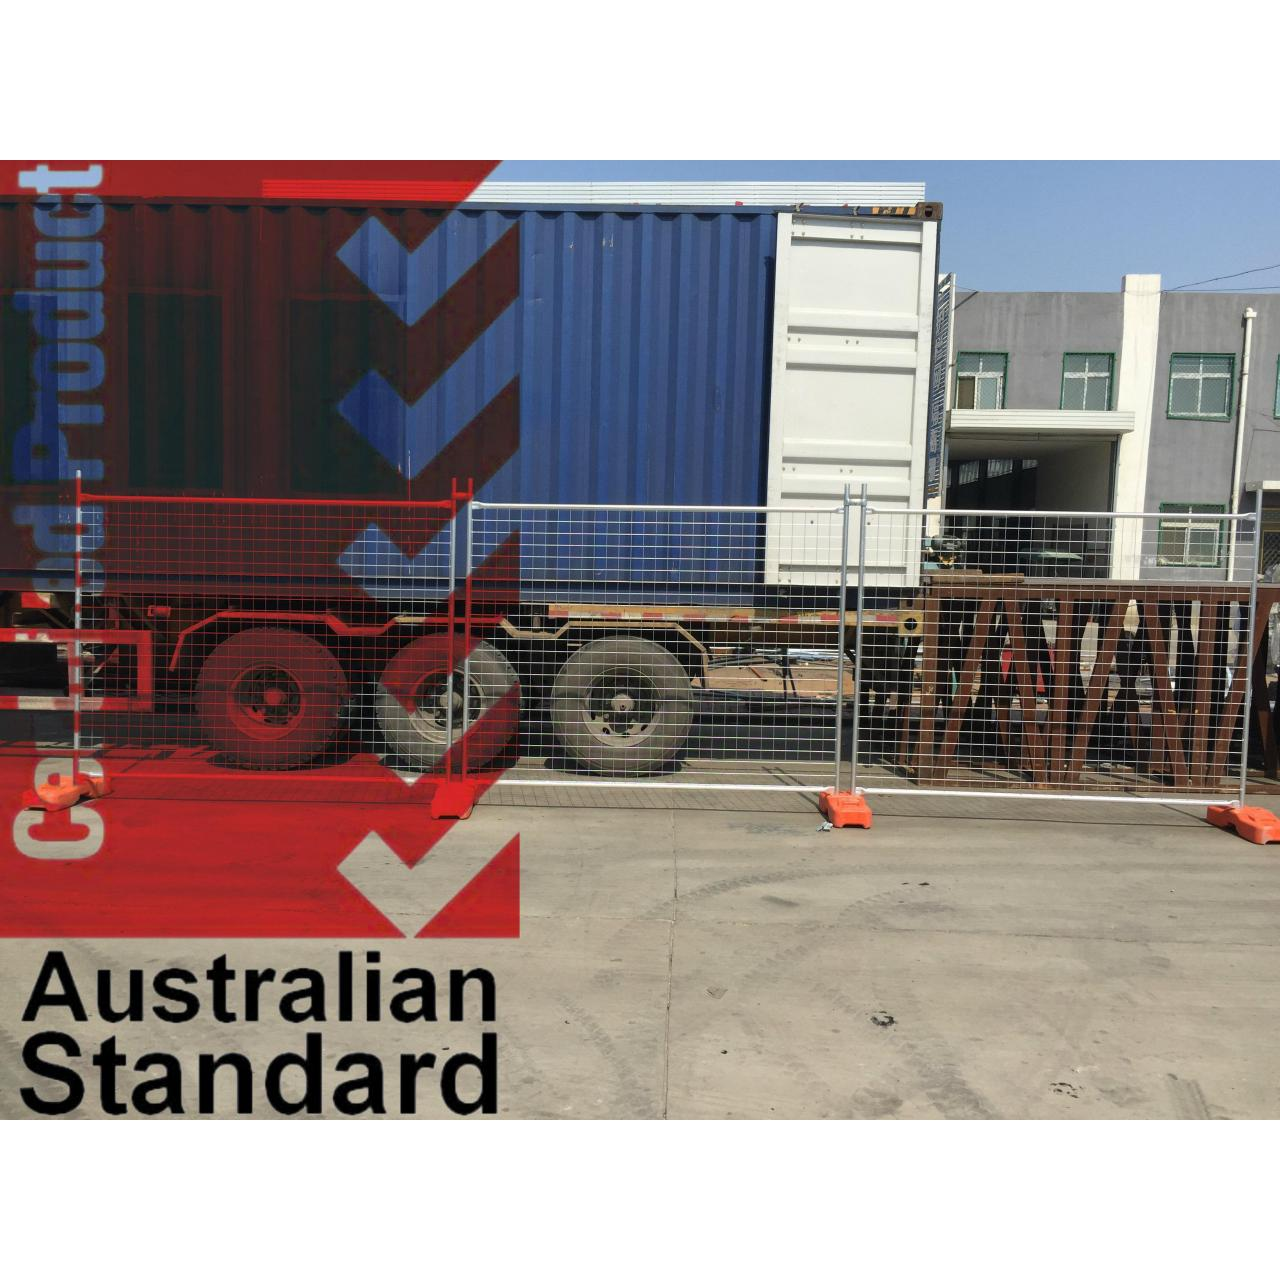 Economic Temporary Fence For Sales Business -17 Microns Zinc Layer HDG before Weld Manufactures